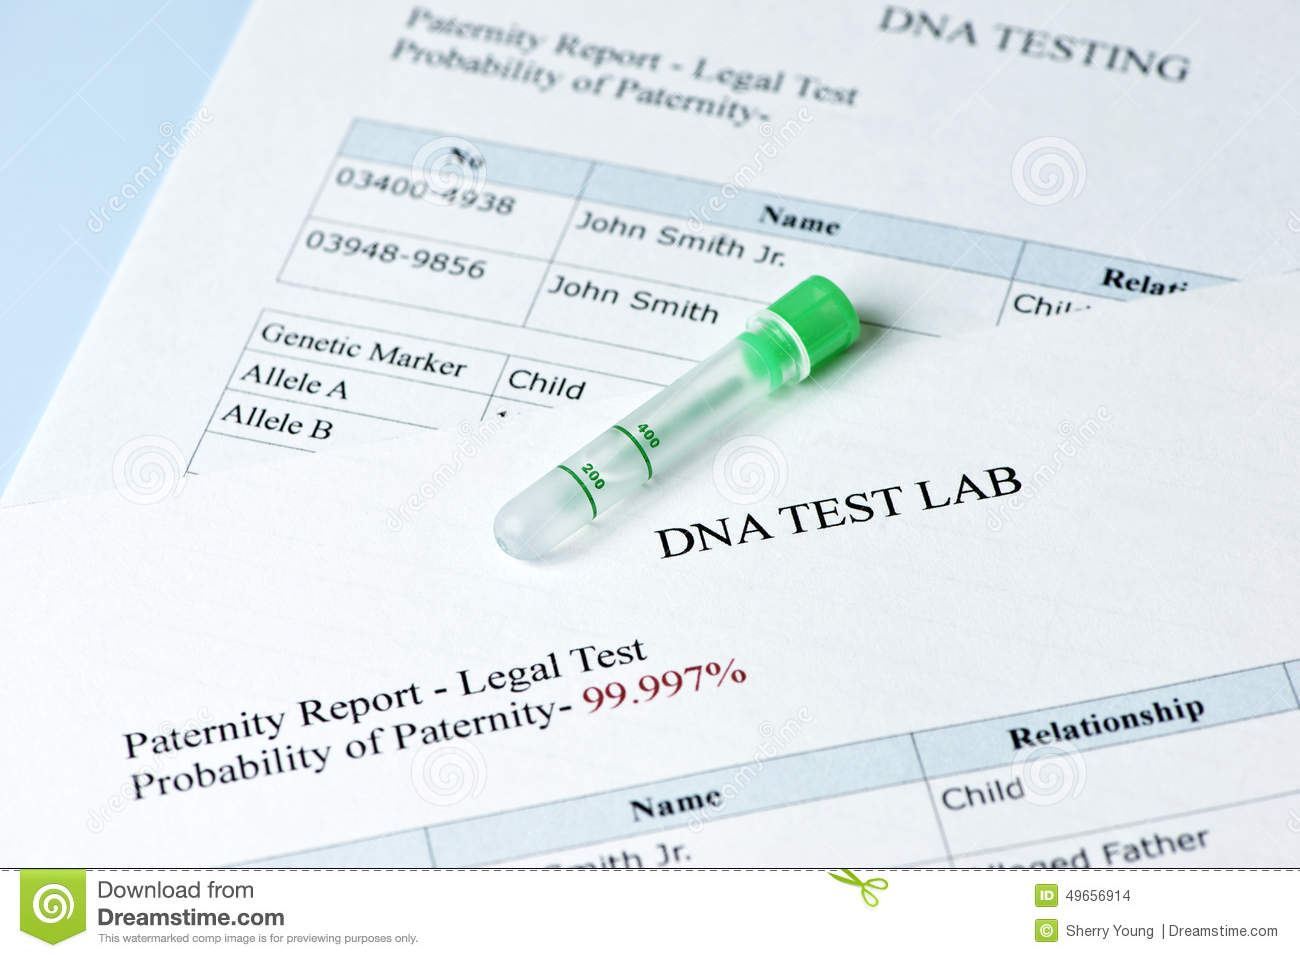 Amplification Analysis Assay Biology Stock Images - Image: 33373184